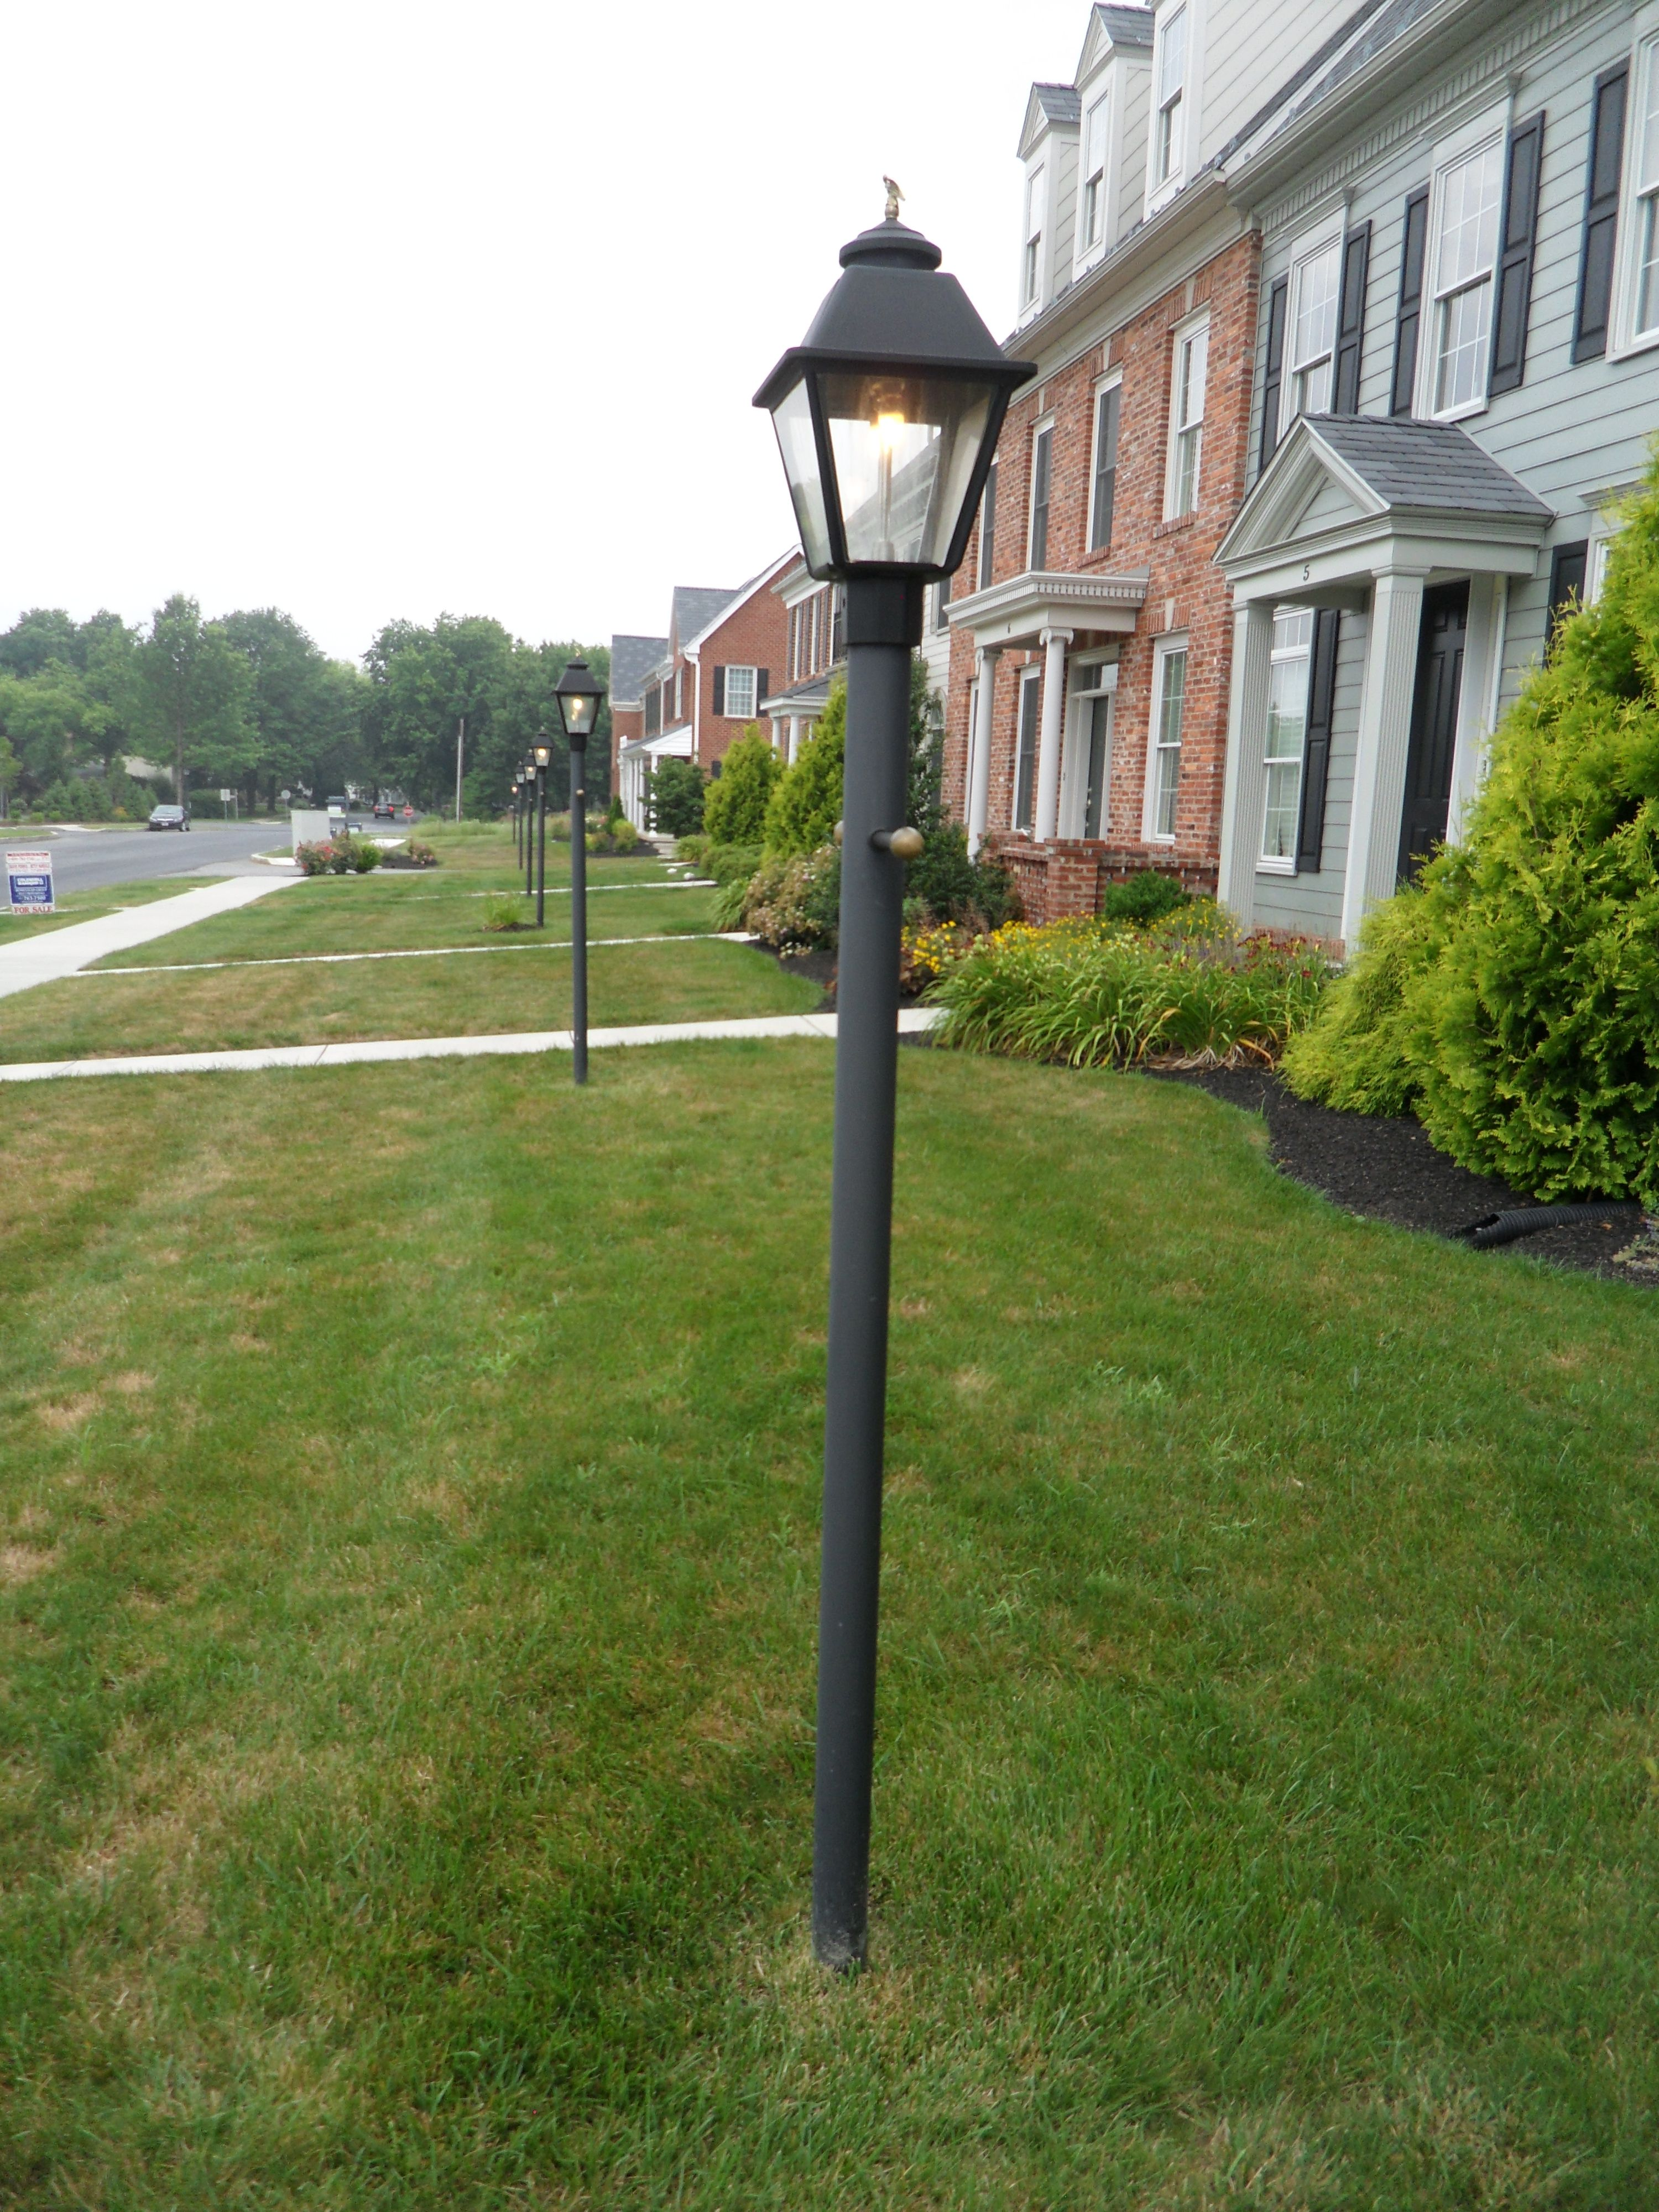 Post Mounted Westmoreland D Lamps With Dual Inverted Gas Mantle Burners And Small Eagle Finials Light Up The Jamestown Square Neighb Gas Lanterns Gas Lamp Lamp